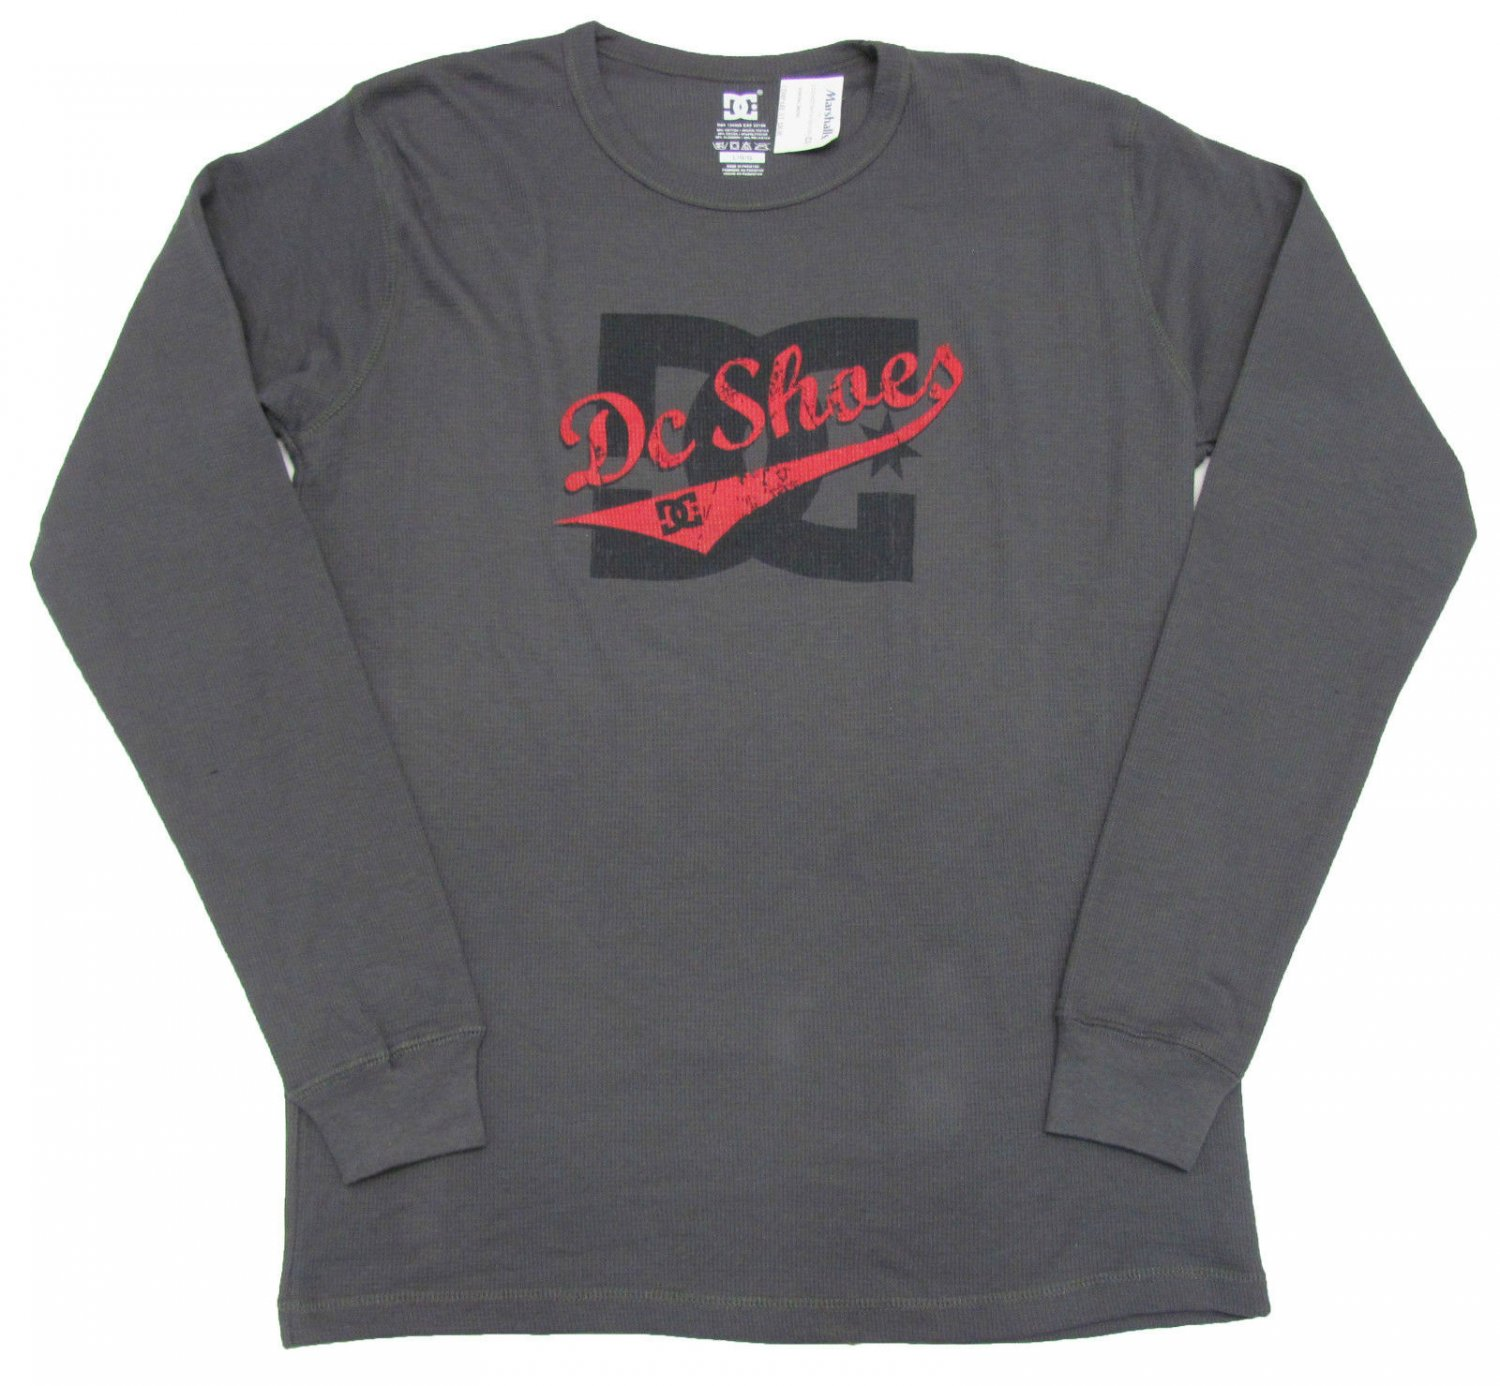 DC Shoes Mens S Dark Gray Thermal Shirt with Black Red Logo Small Long Sleeve